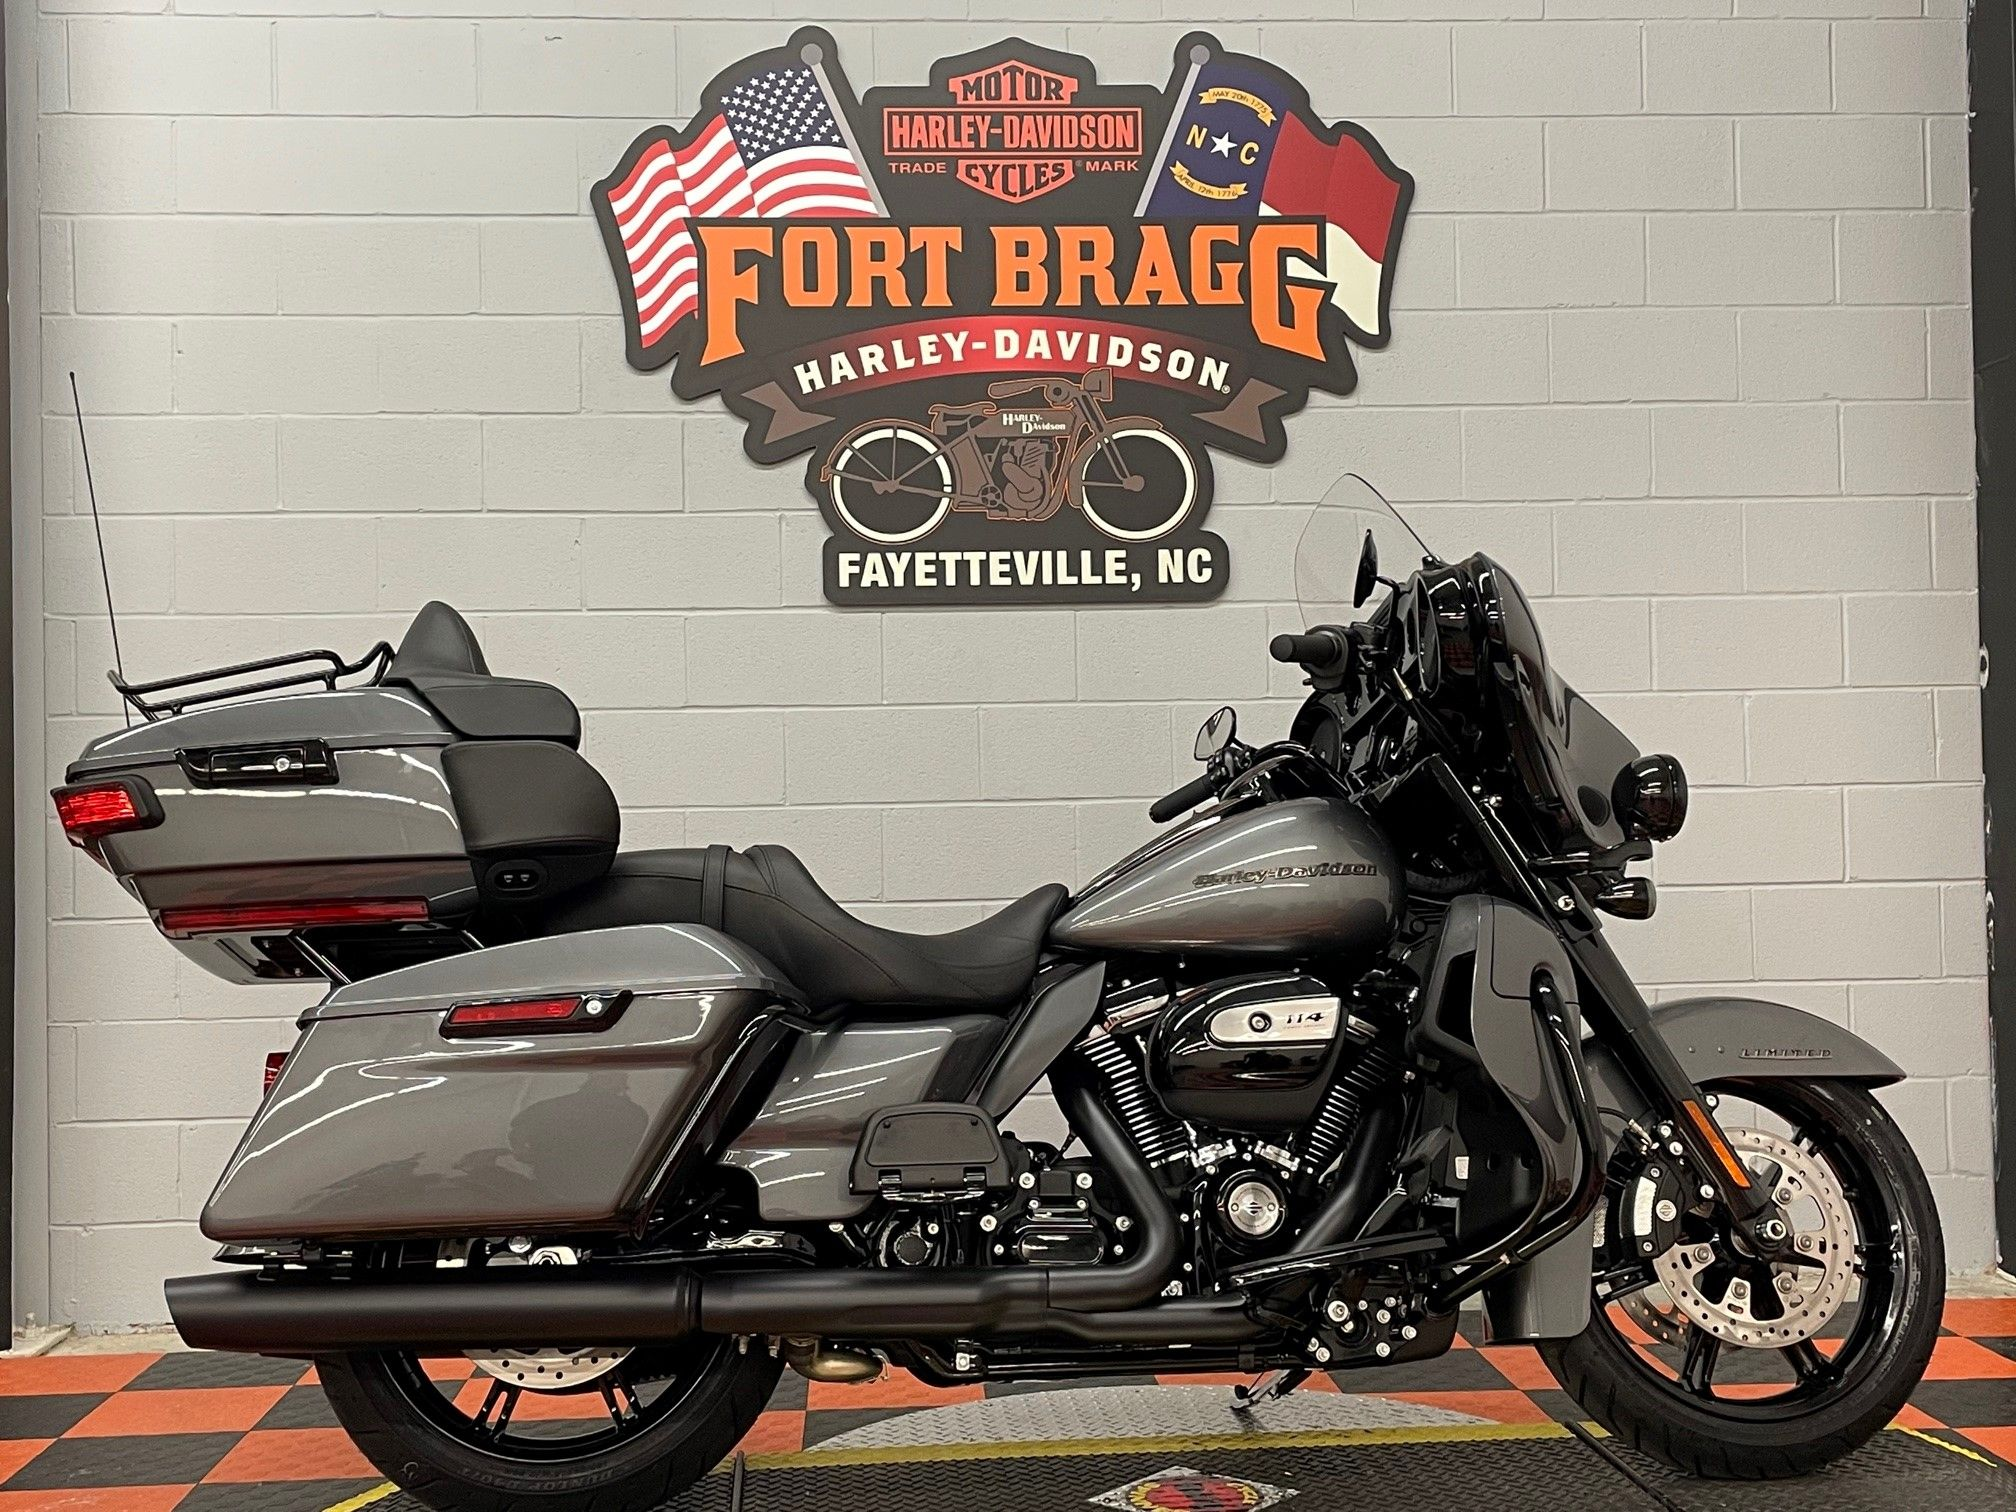 New 2021 Harley-Davidson Touring Ultra Limited FLHTK